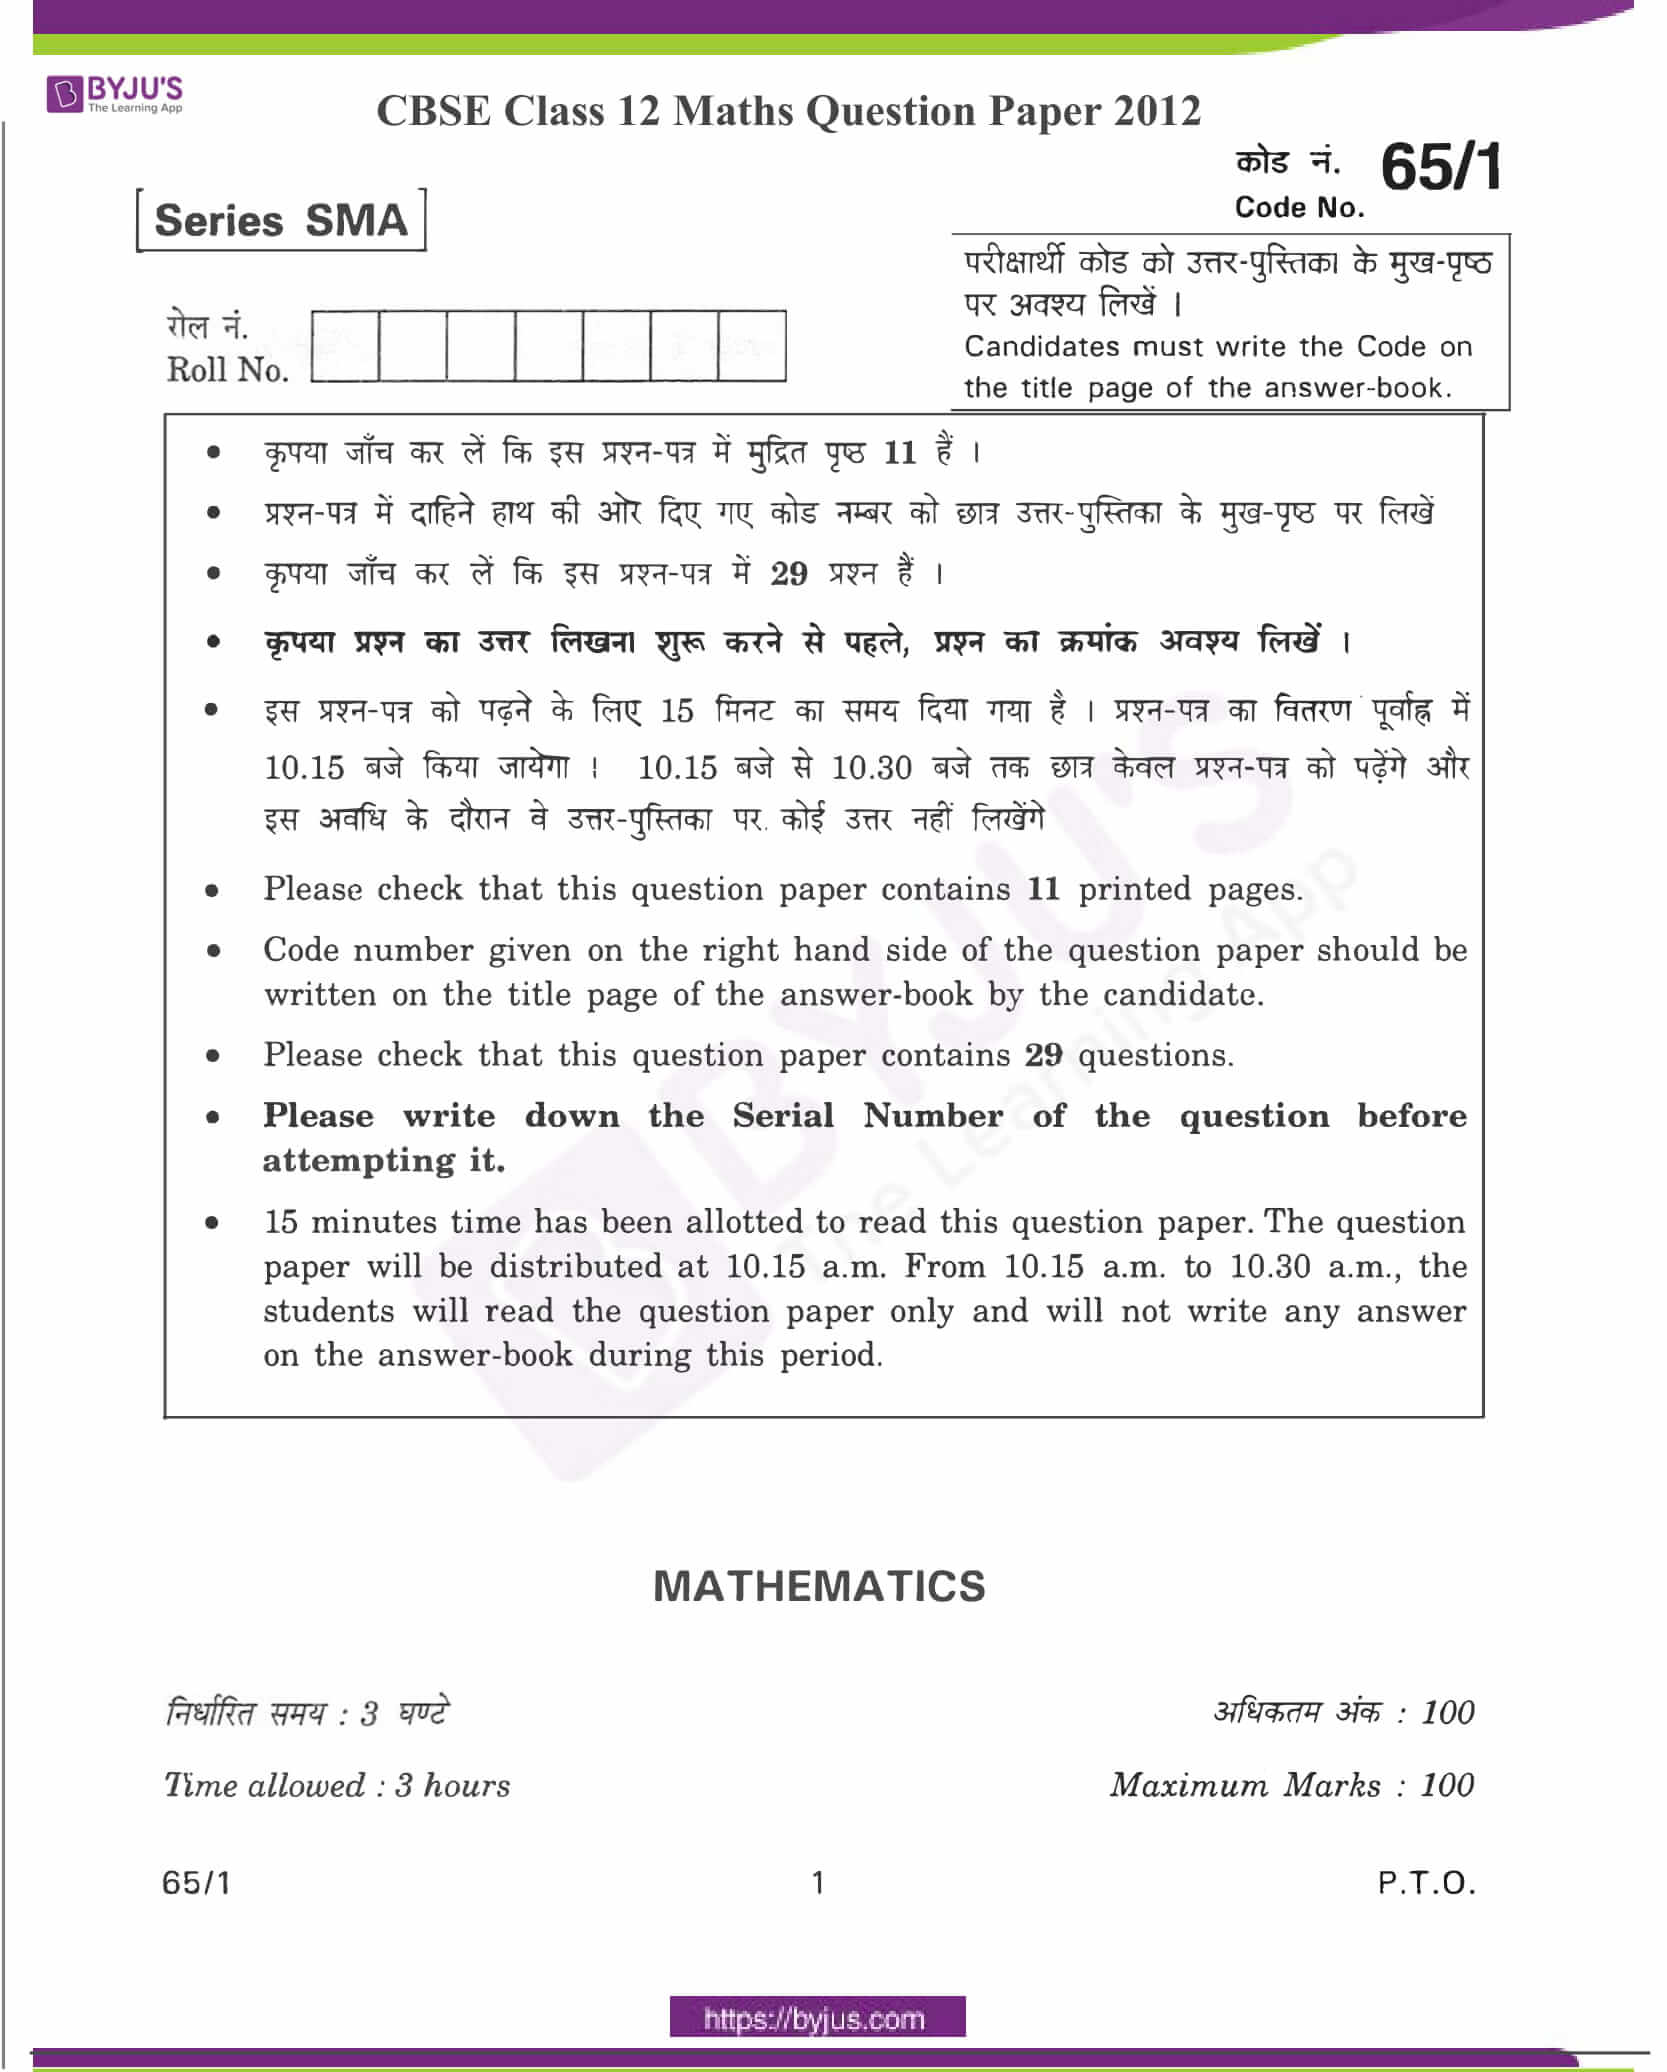 CBSE Class 12 Maths Previous Year Question Papers 2012